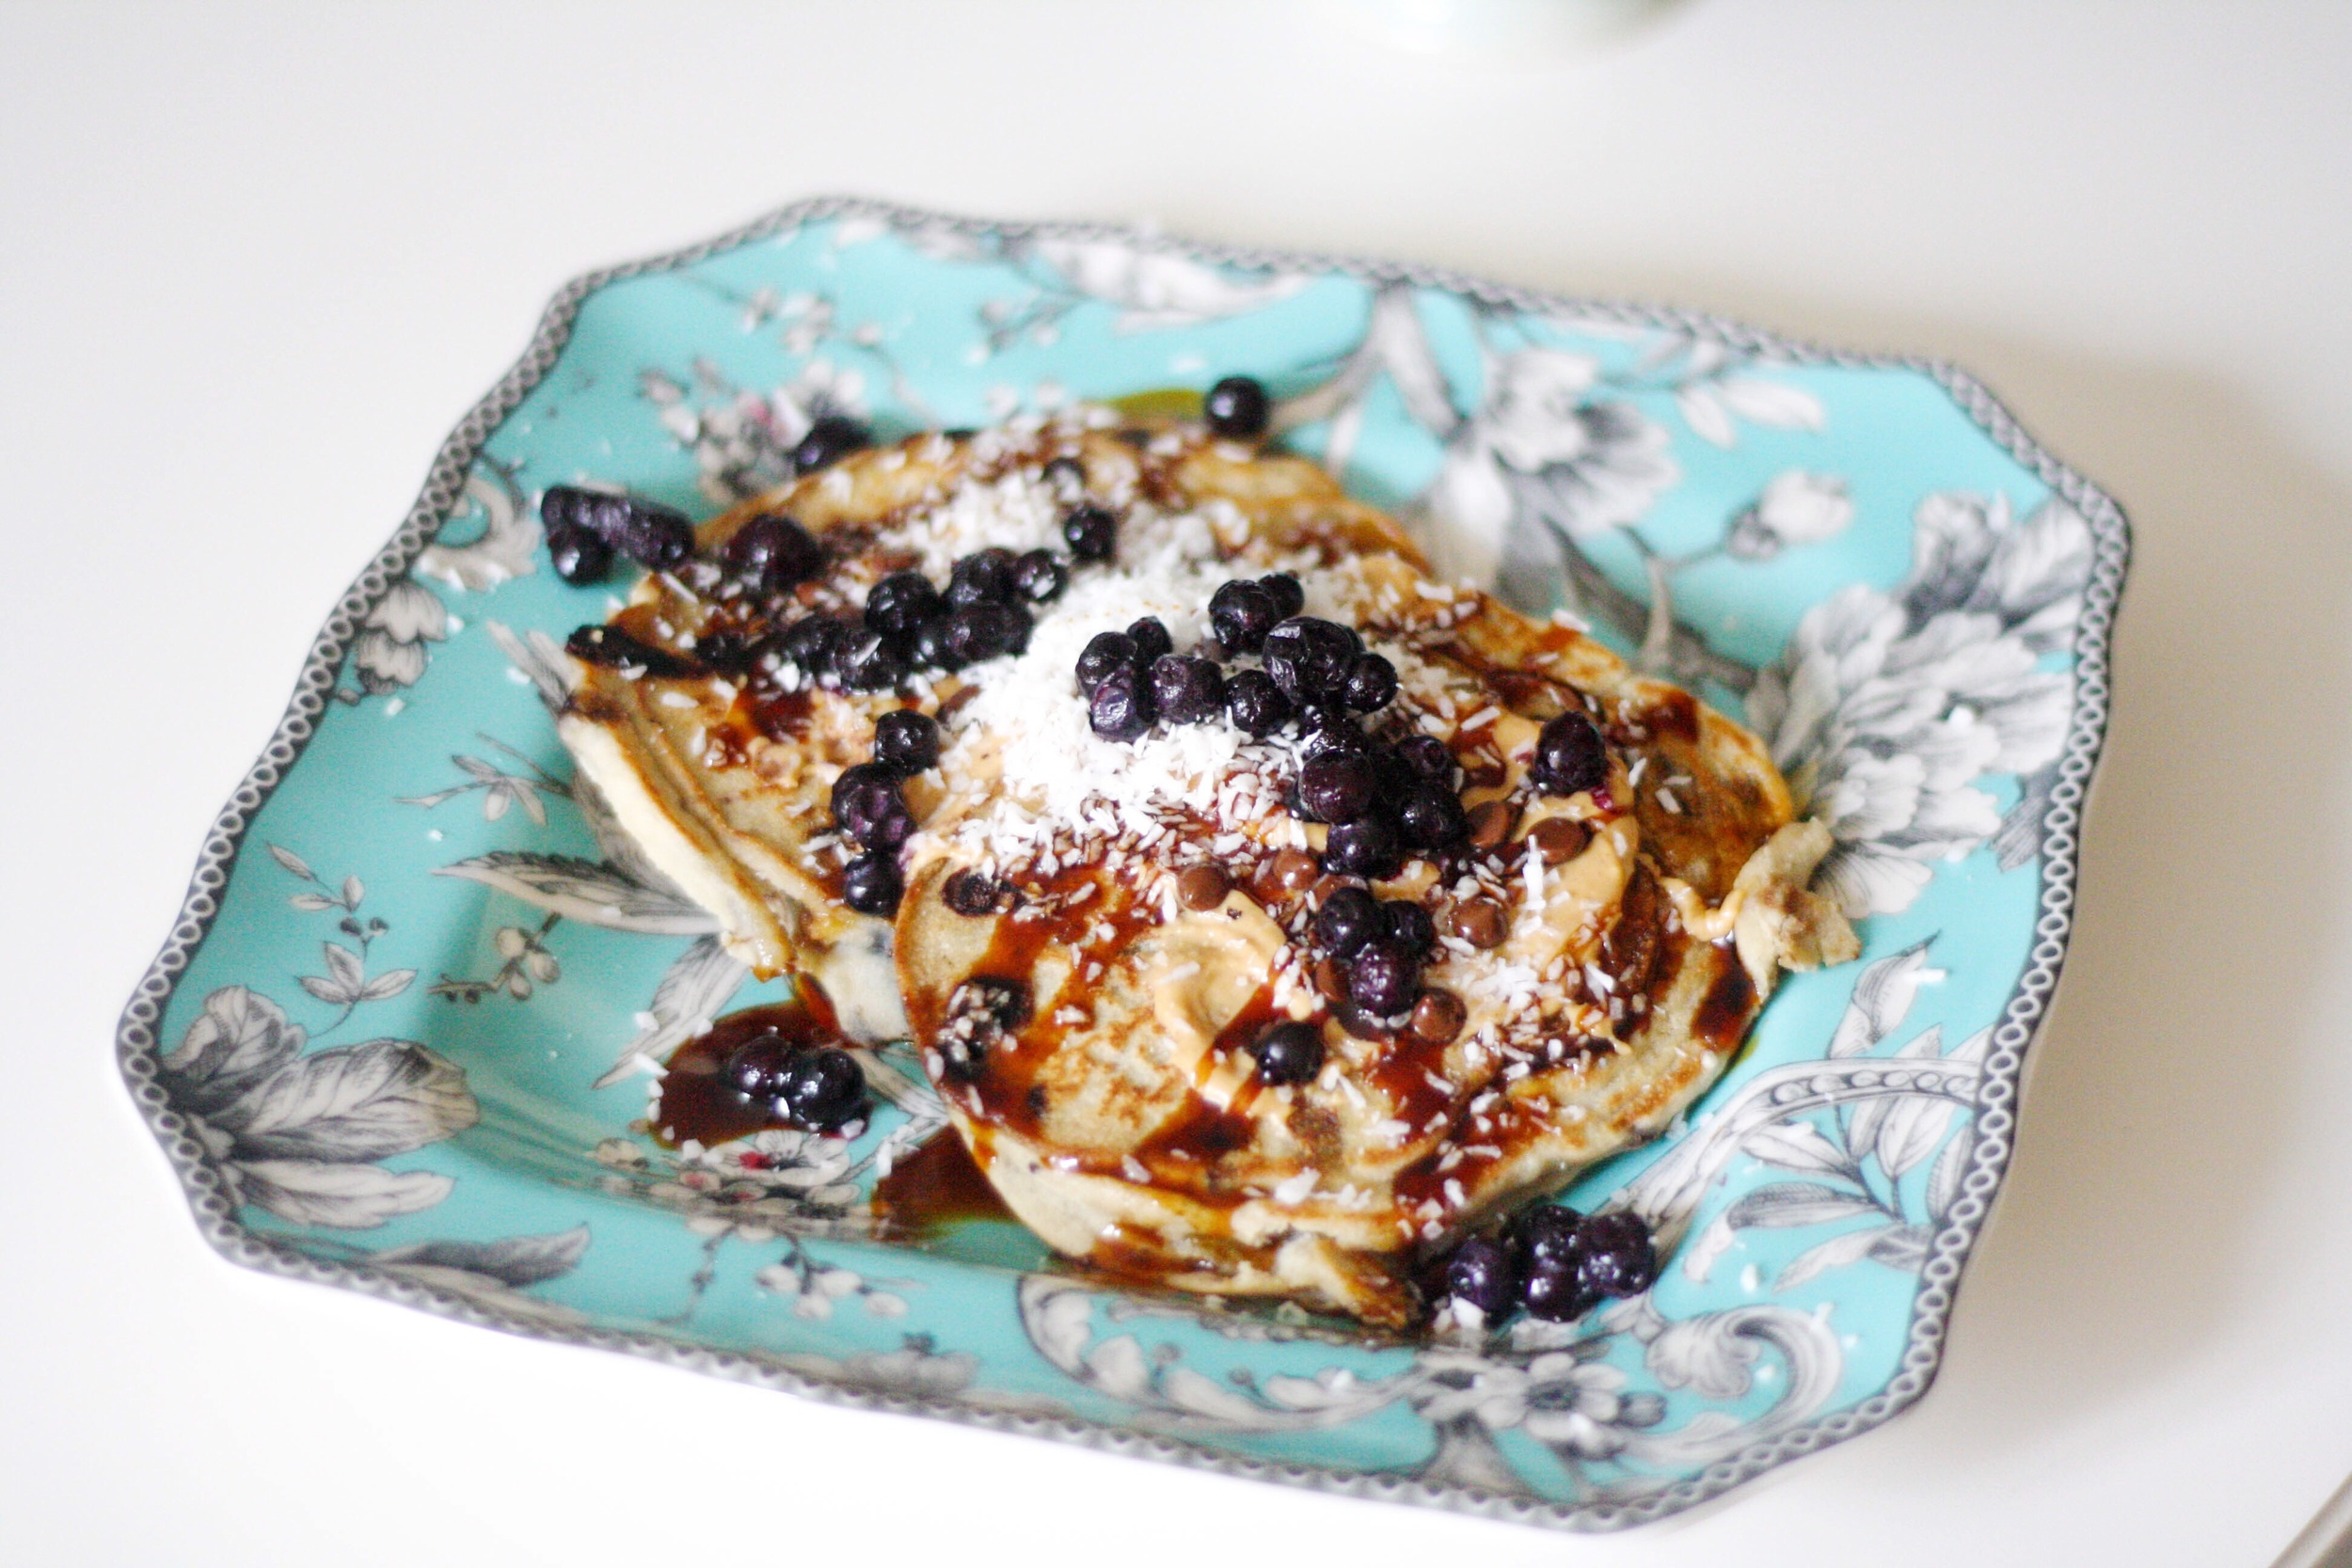 *inspired by The Beauty Detox Foods, Buckwheat Pancakes